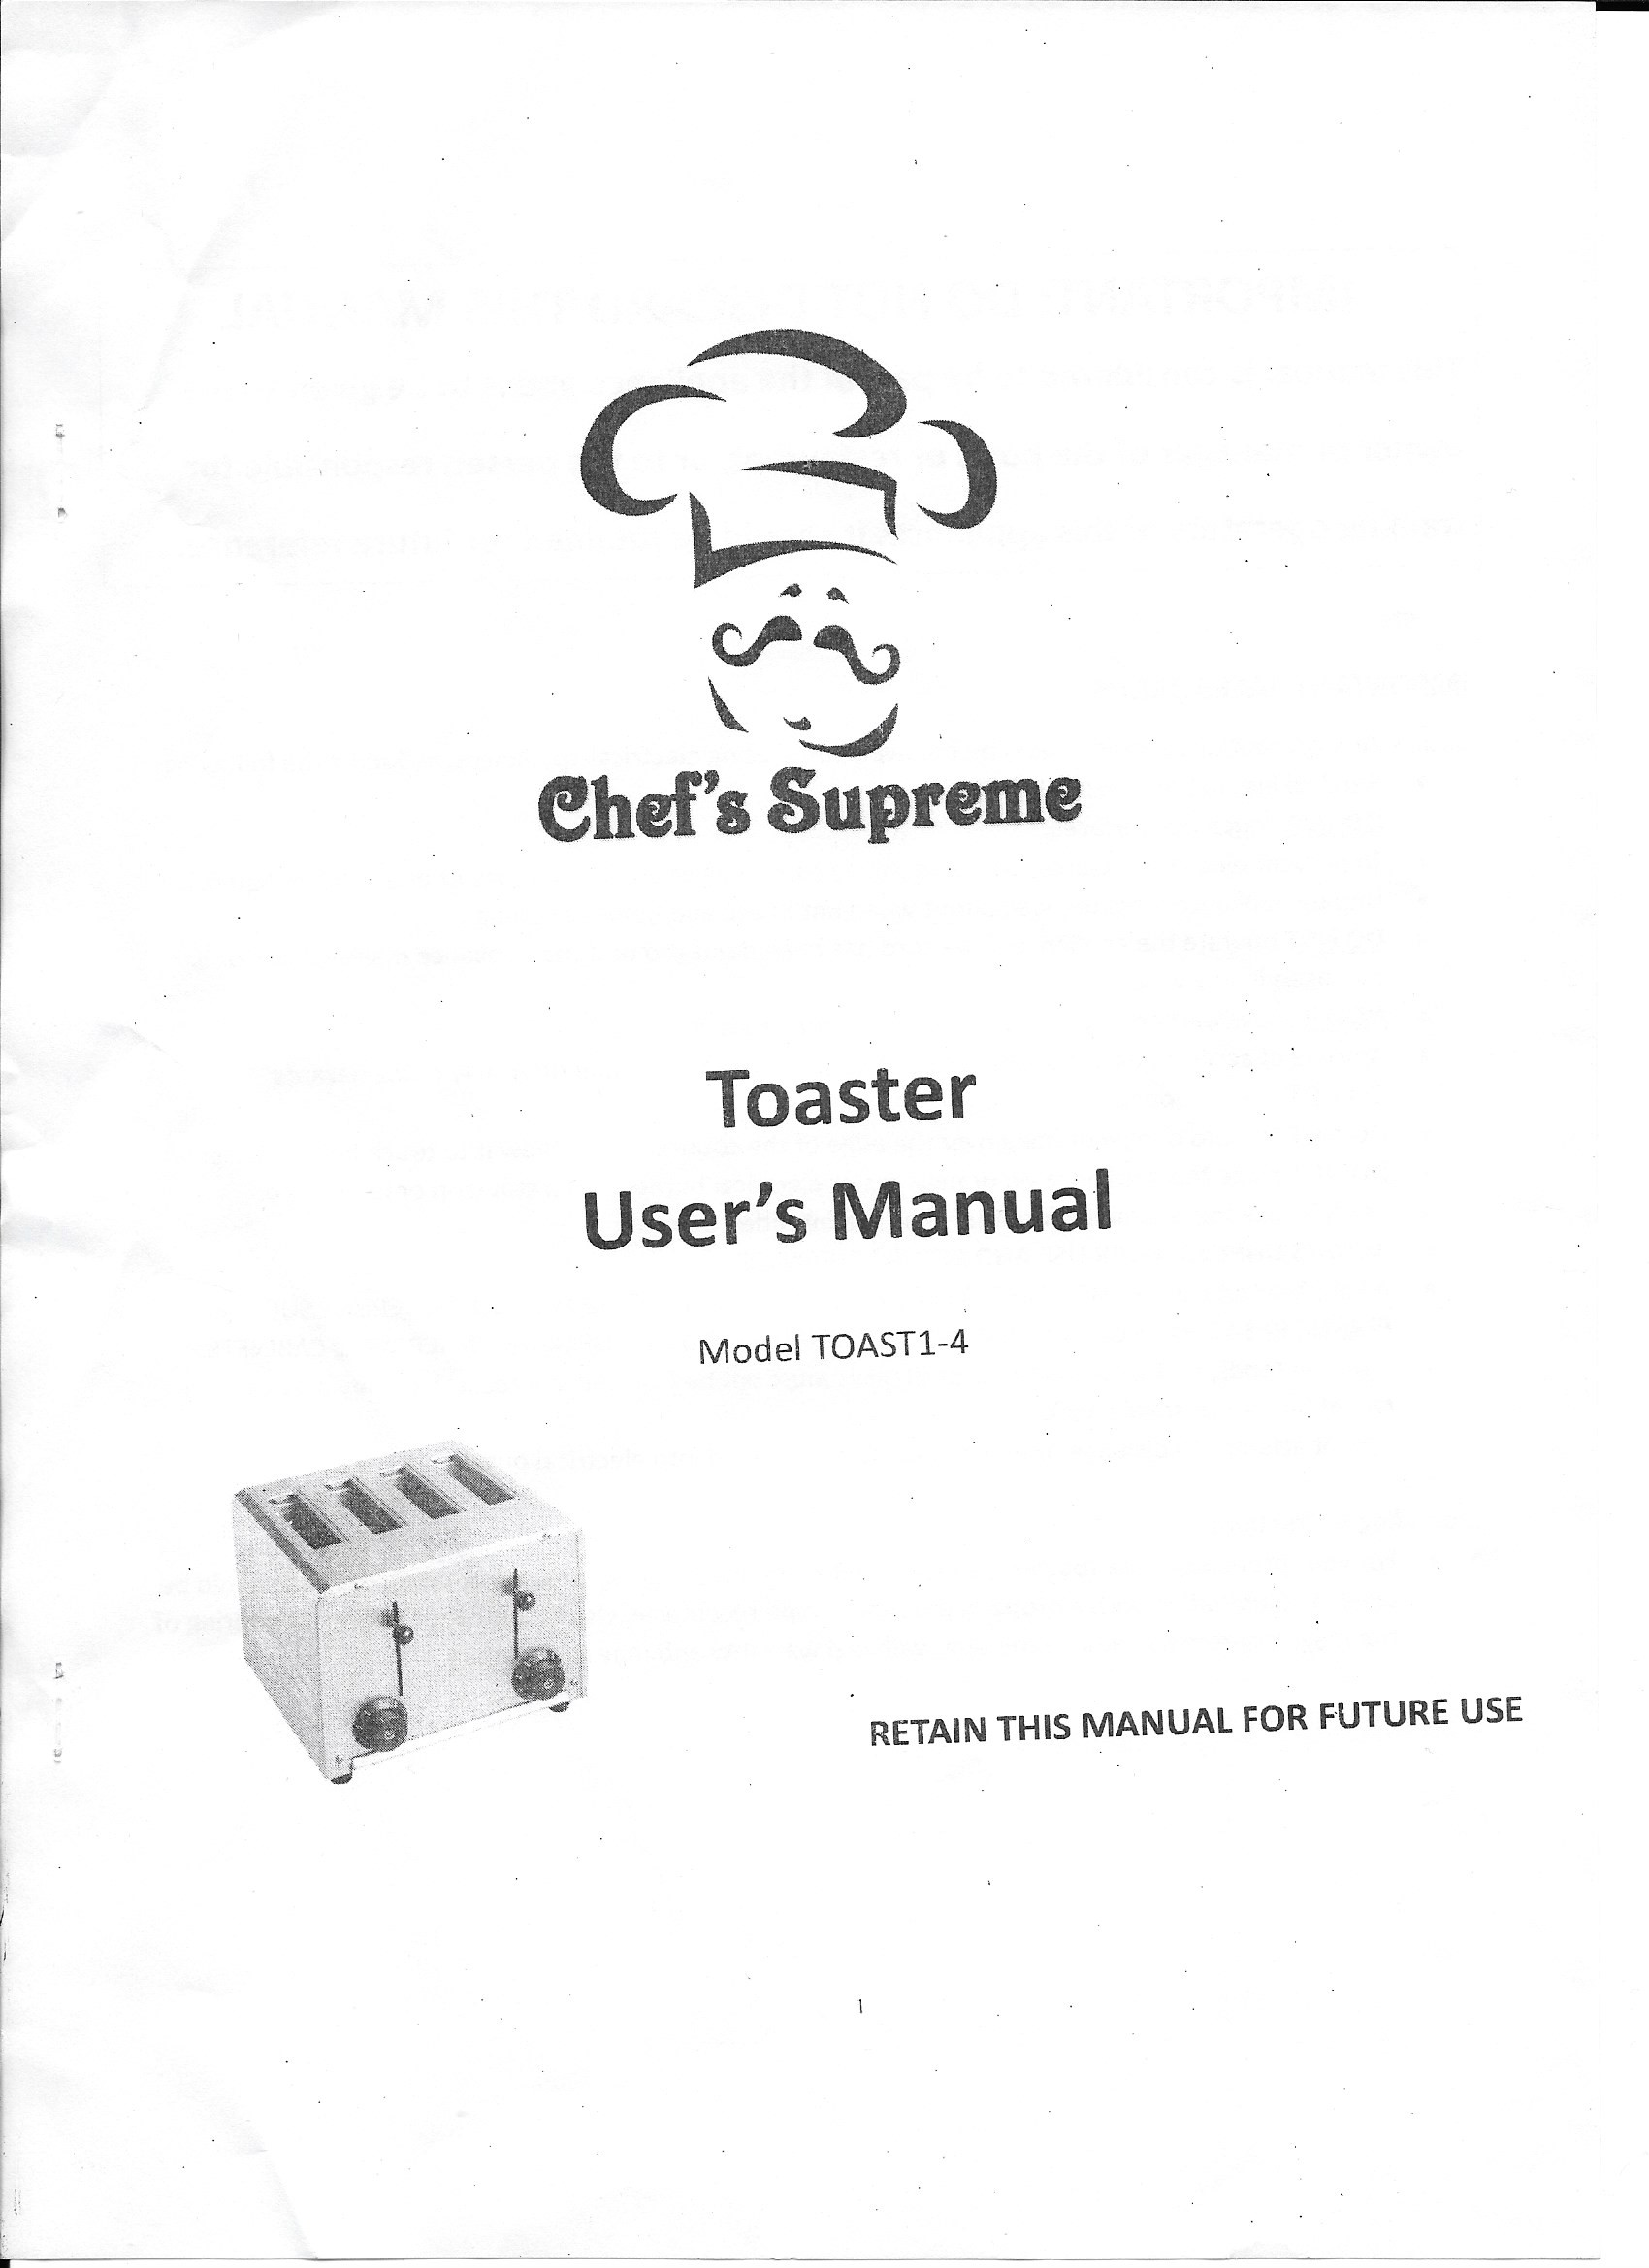 Manual for Toaster